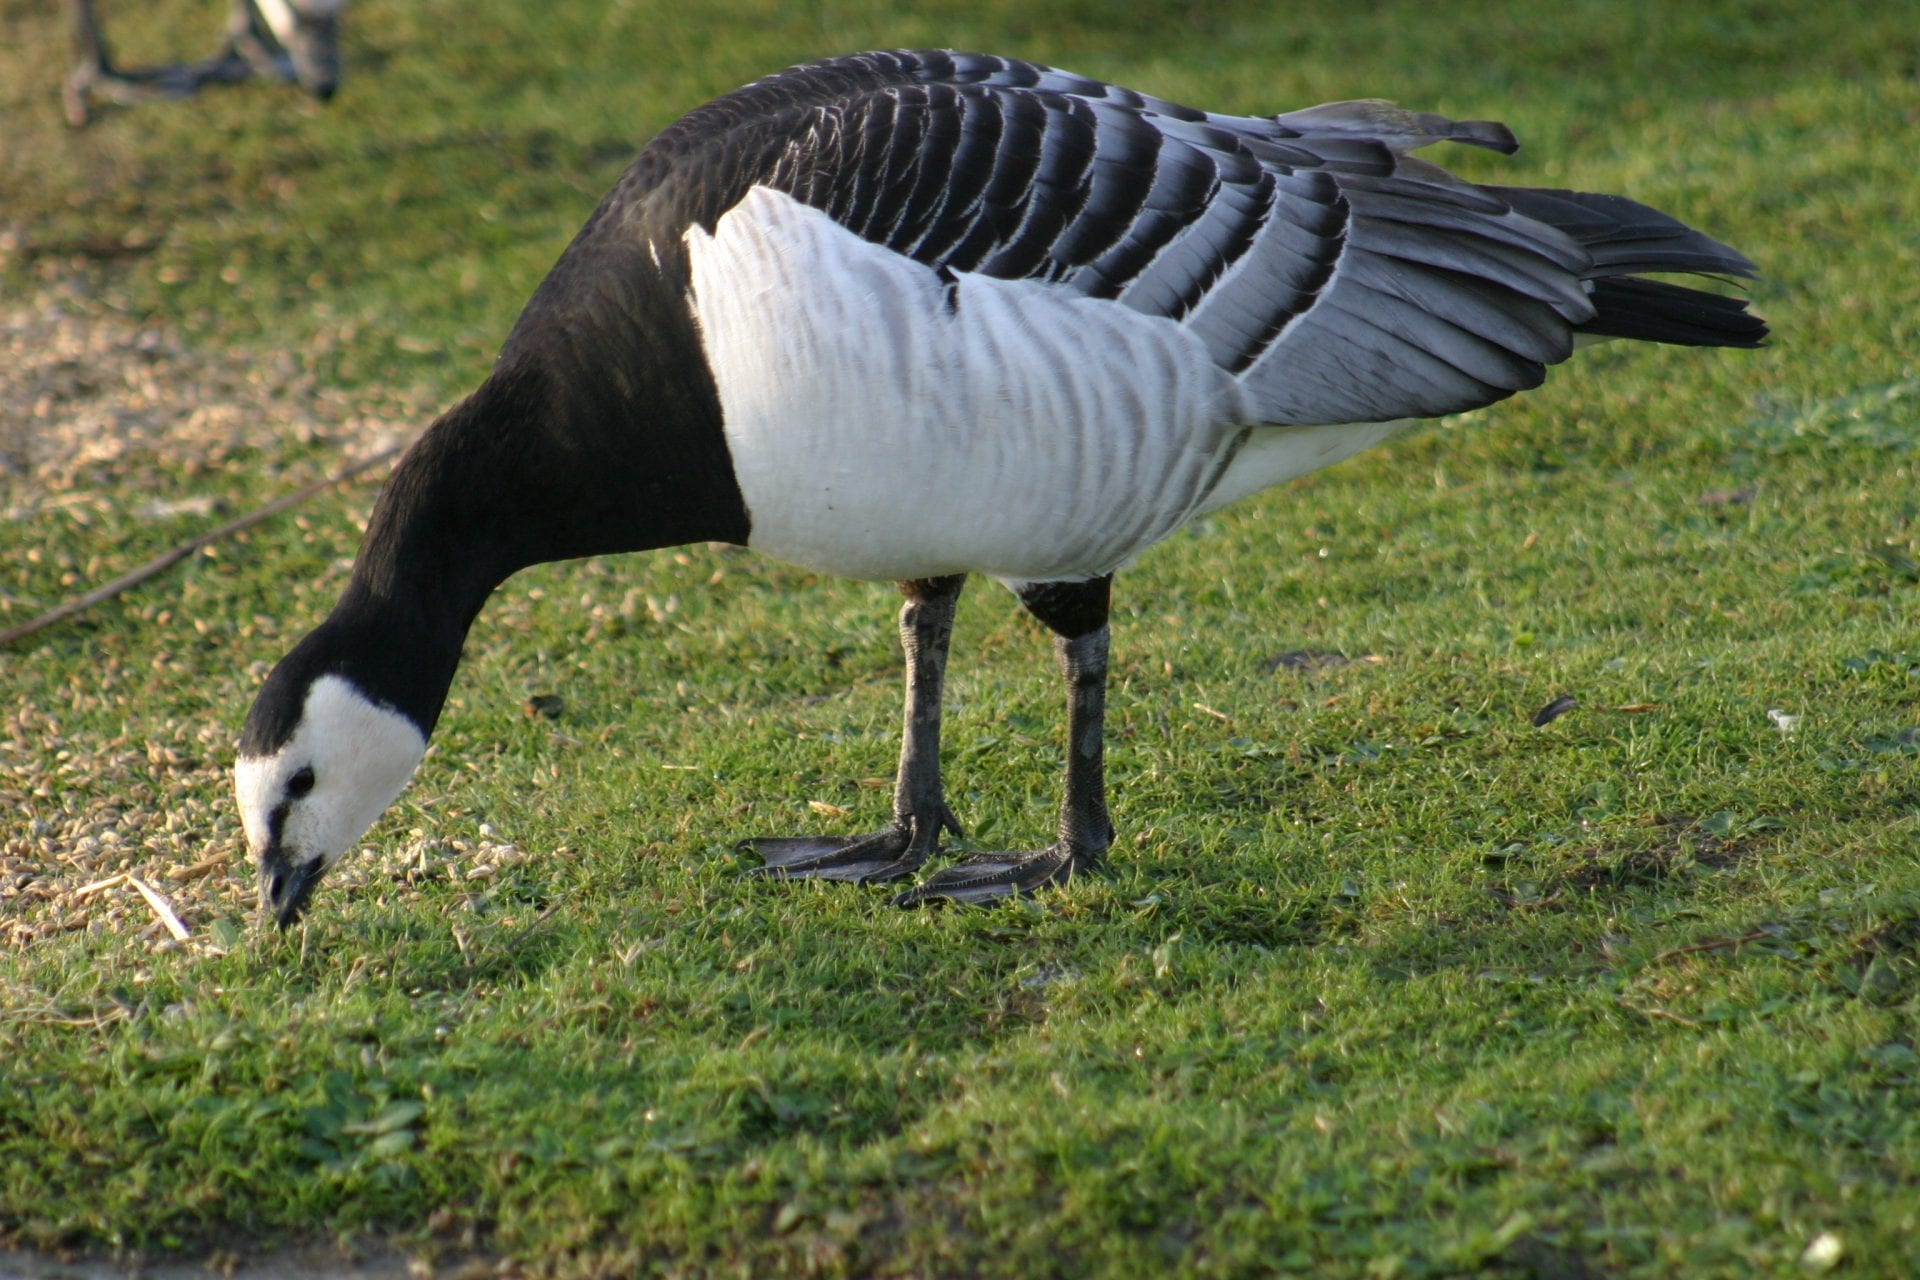 single-barnacle-goose-grazing-on-grass